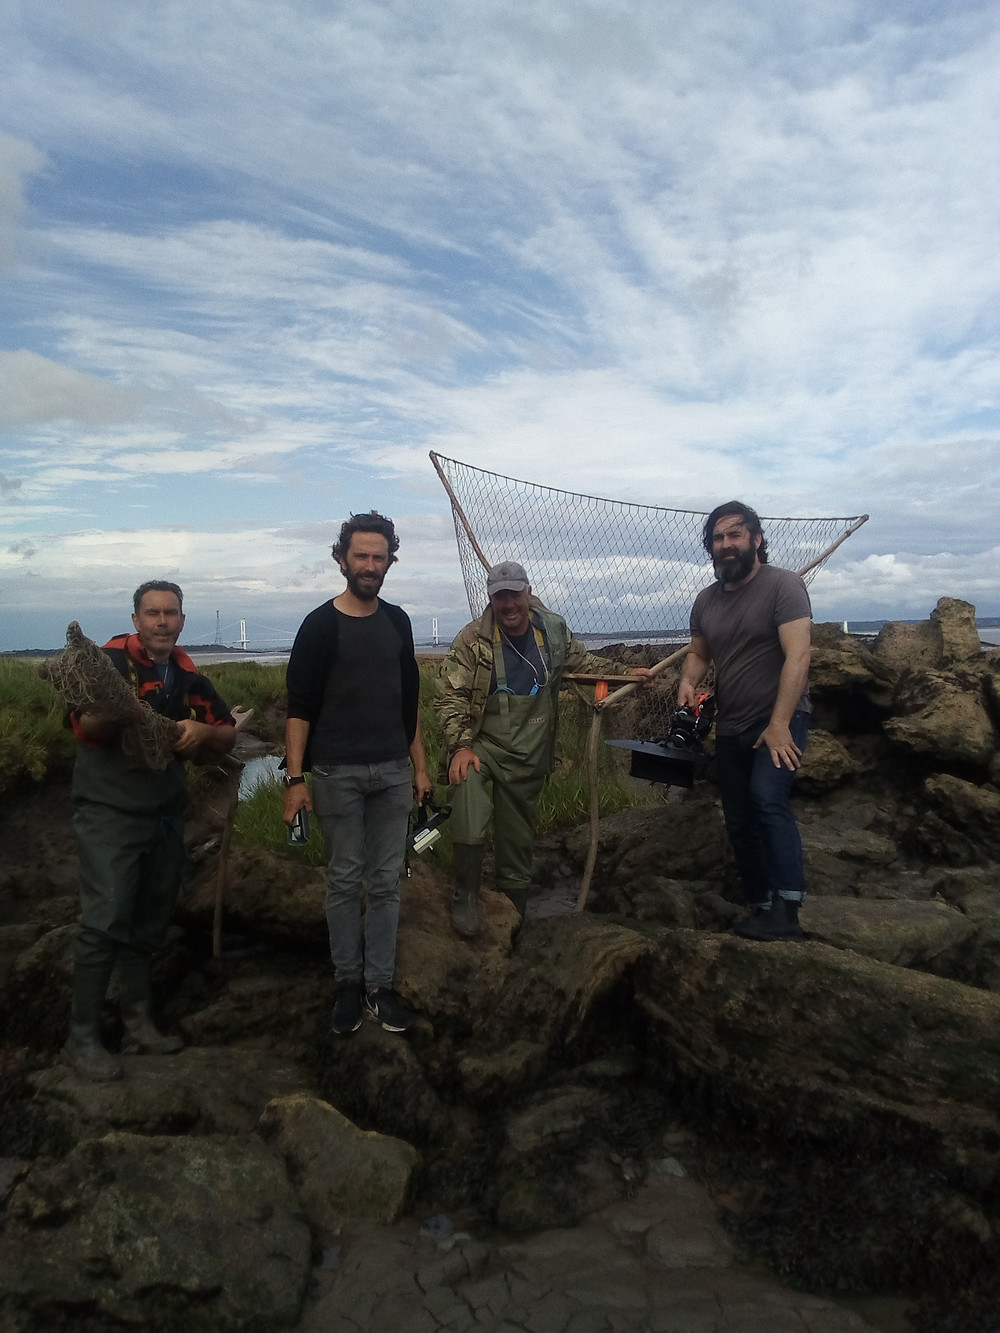 Our estuary guides with the Irish film makers